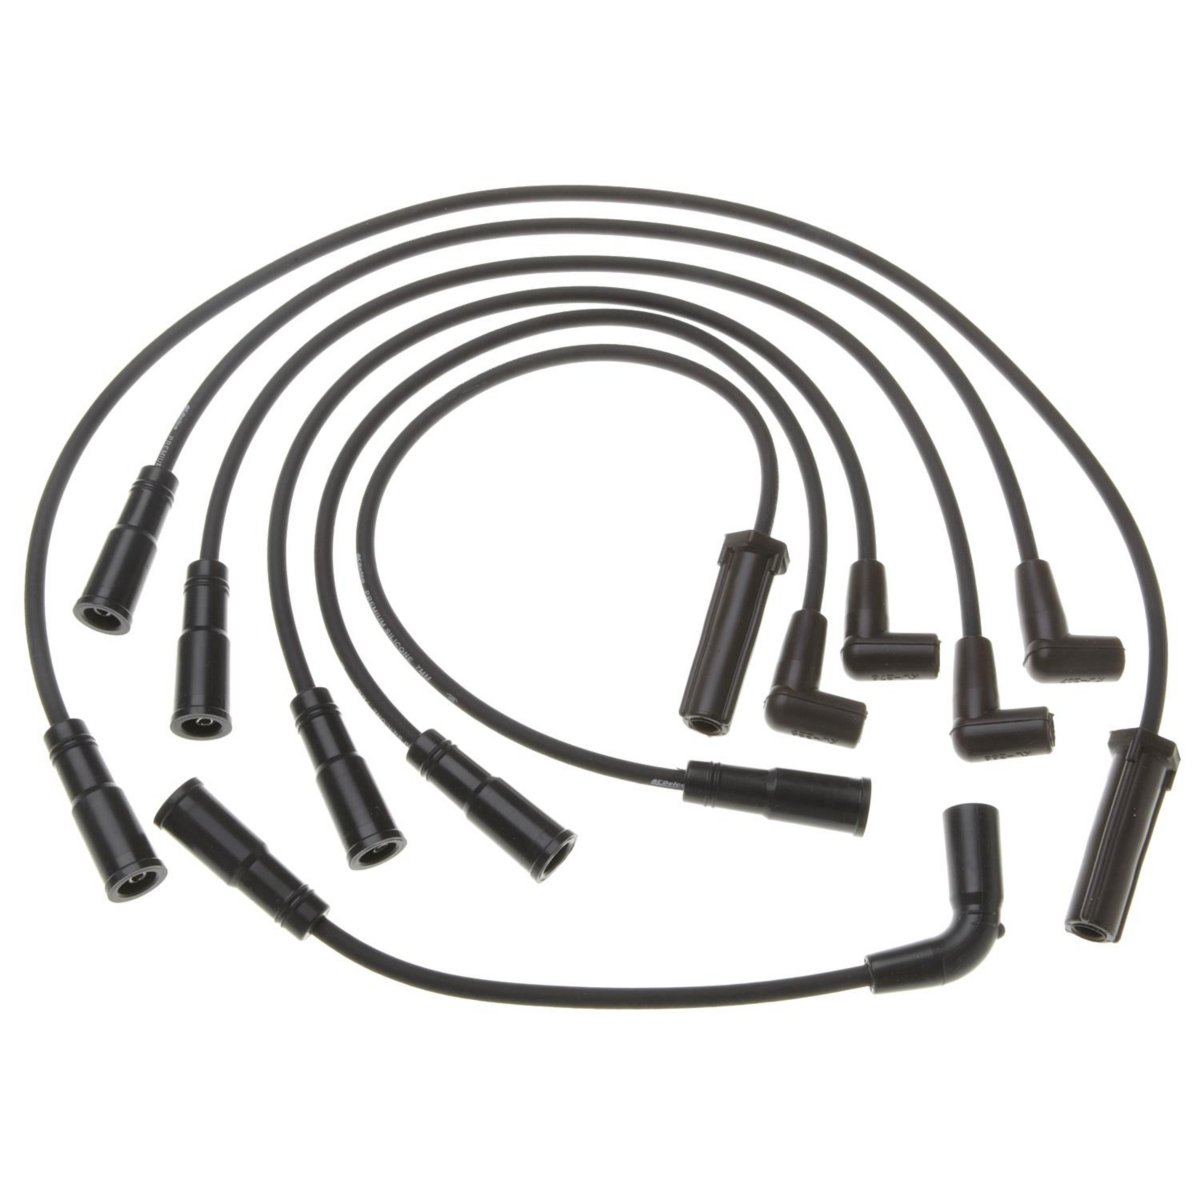 Ac Delco Set Of 6 Spark Plug Wires New Chevy S10 Pickup